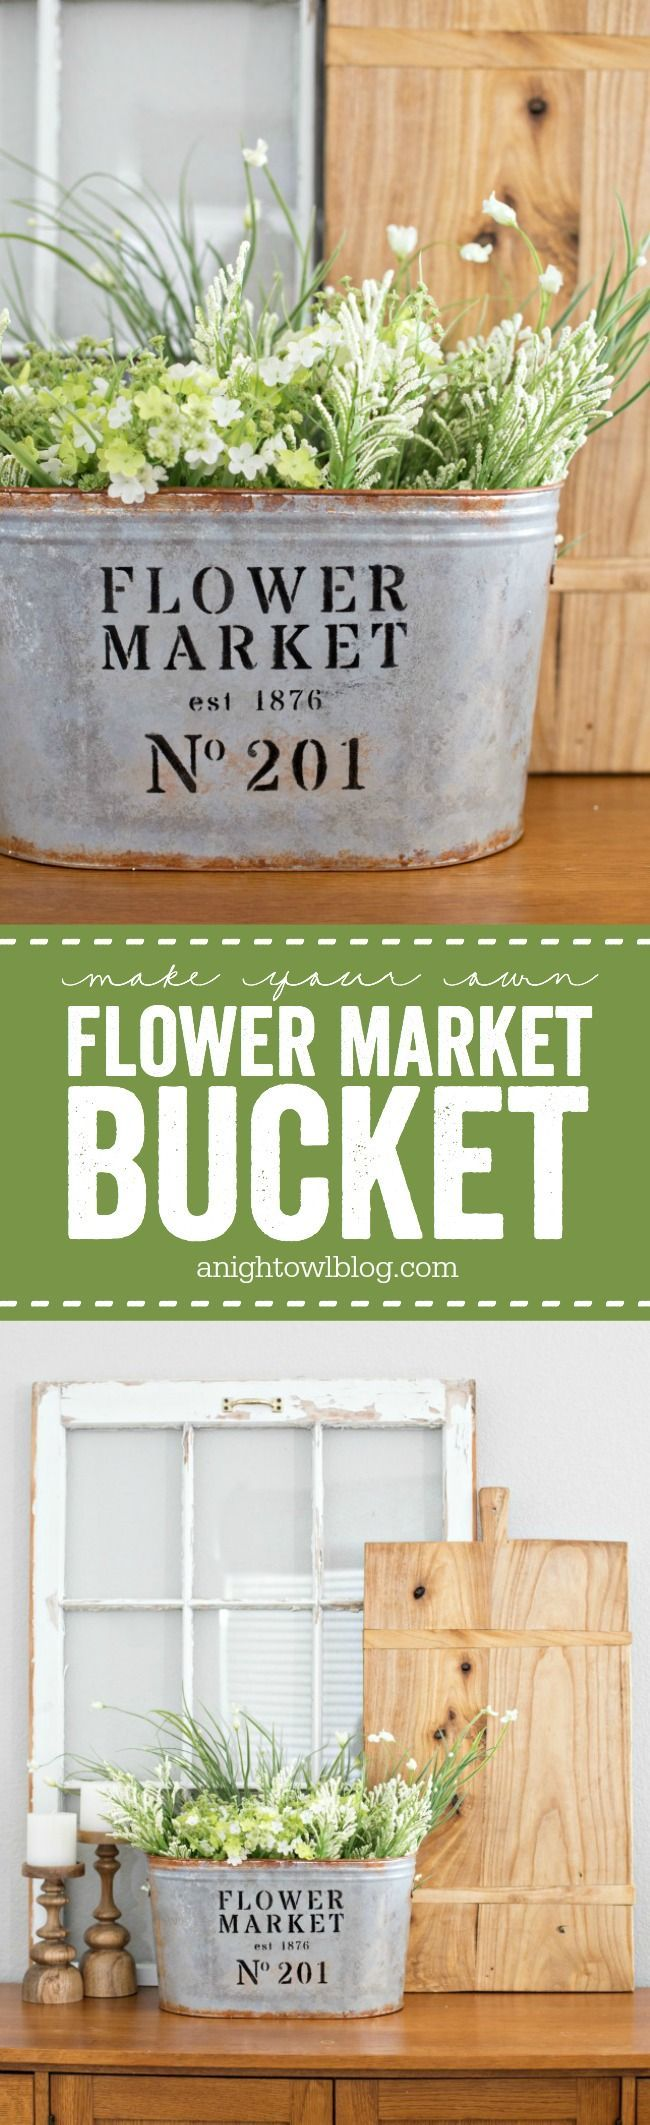 How to's : Love a modern farmhouse look for less? Make your own DIY Metal Flower Market Bucket in just a few easy steps!